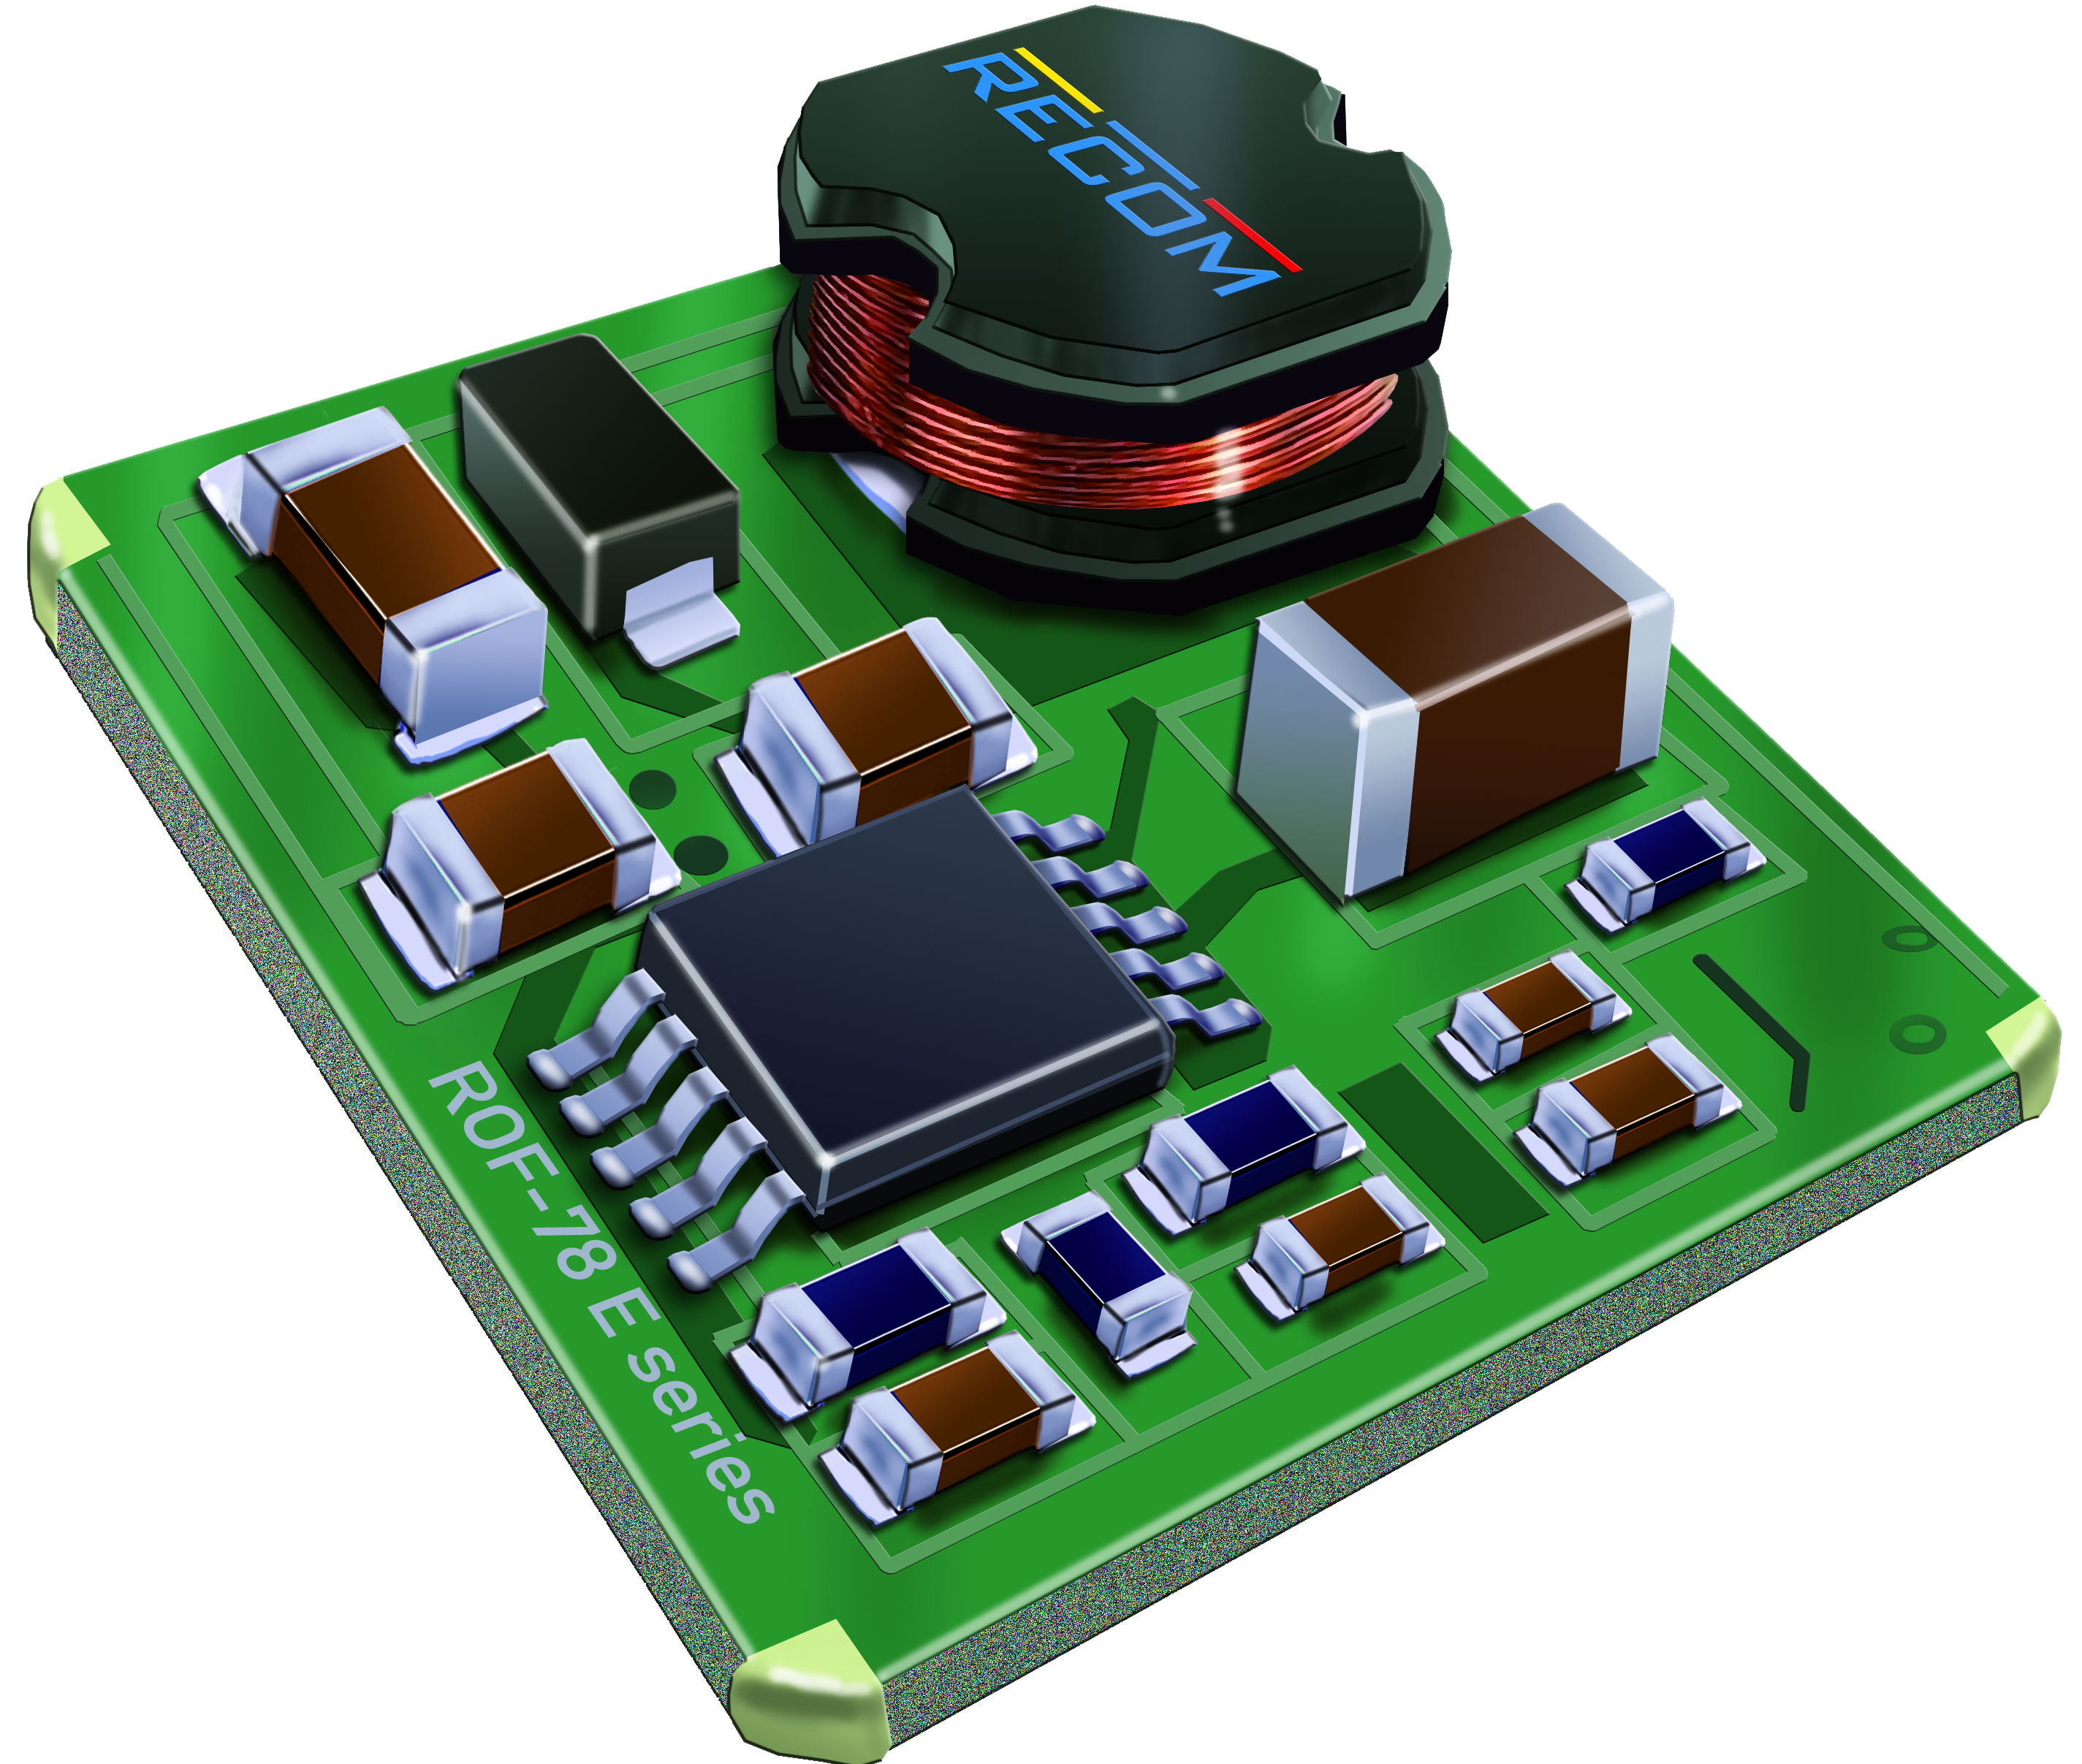 Semiconductors Power Management DC - DC Converters ROF-78E5.0-0.5SMD-R by Recom Power